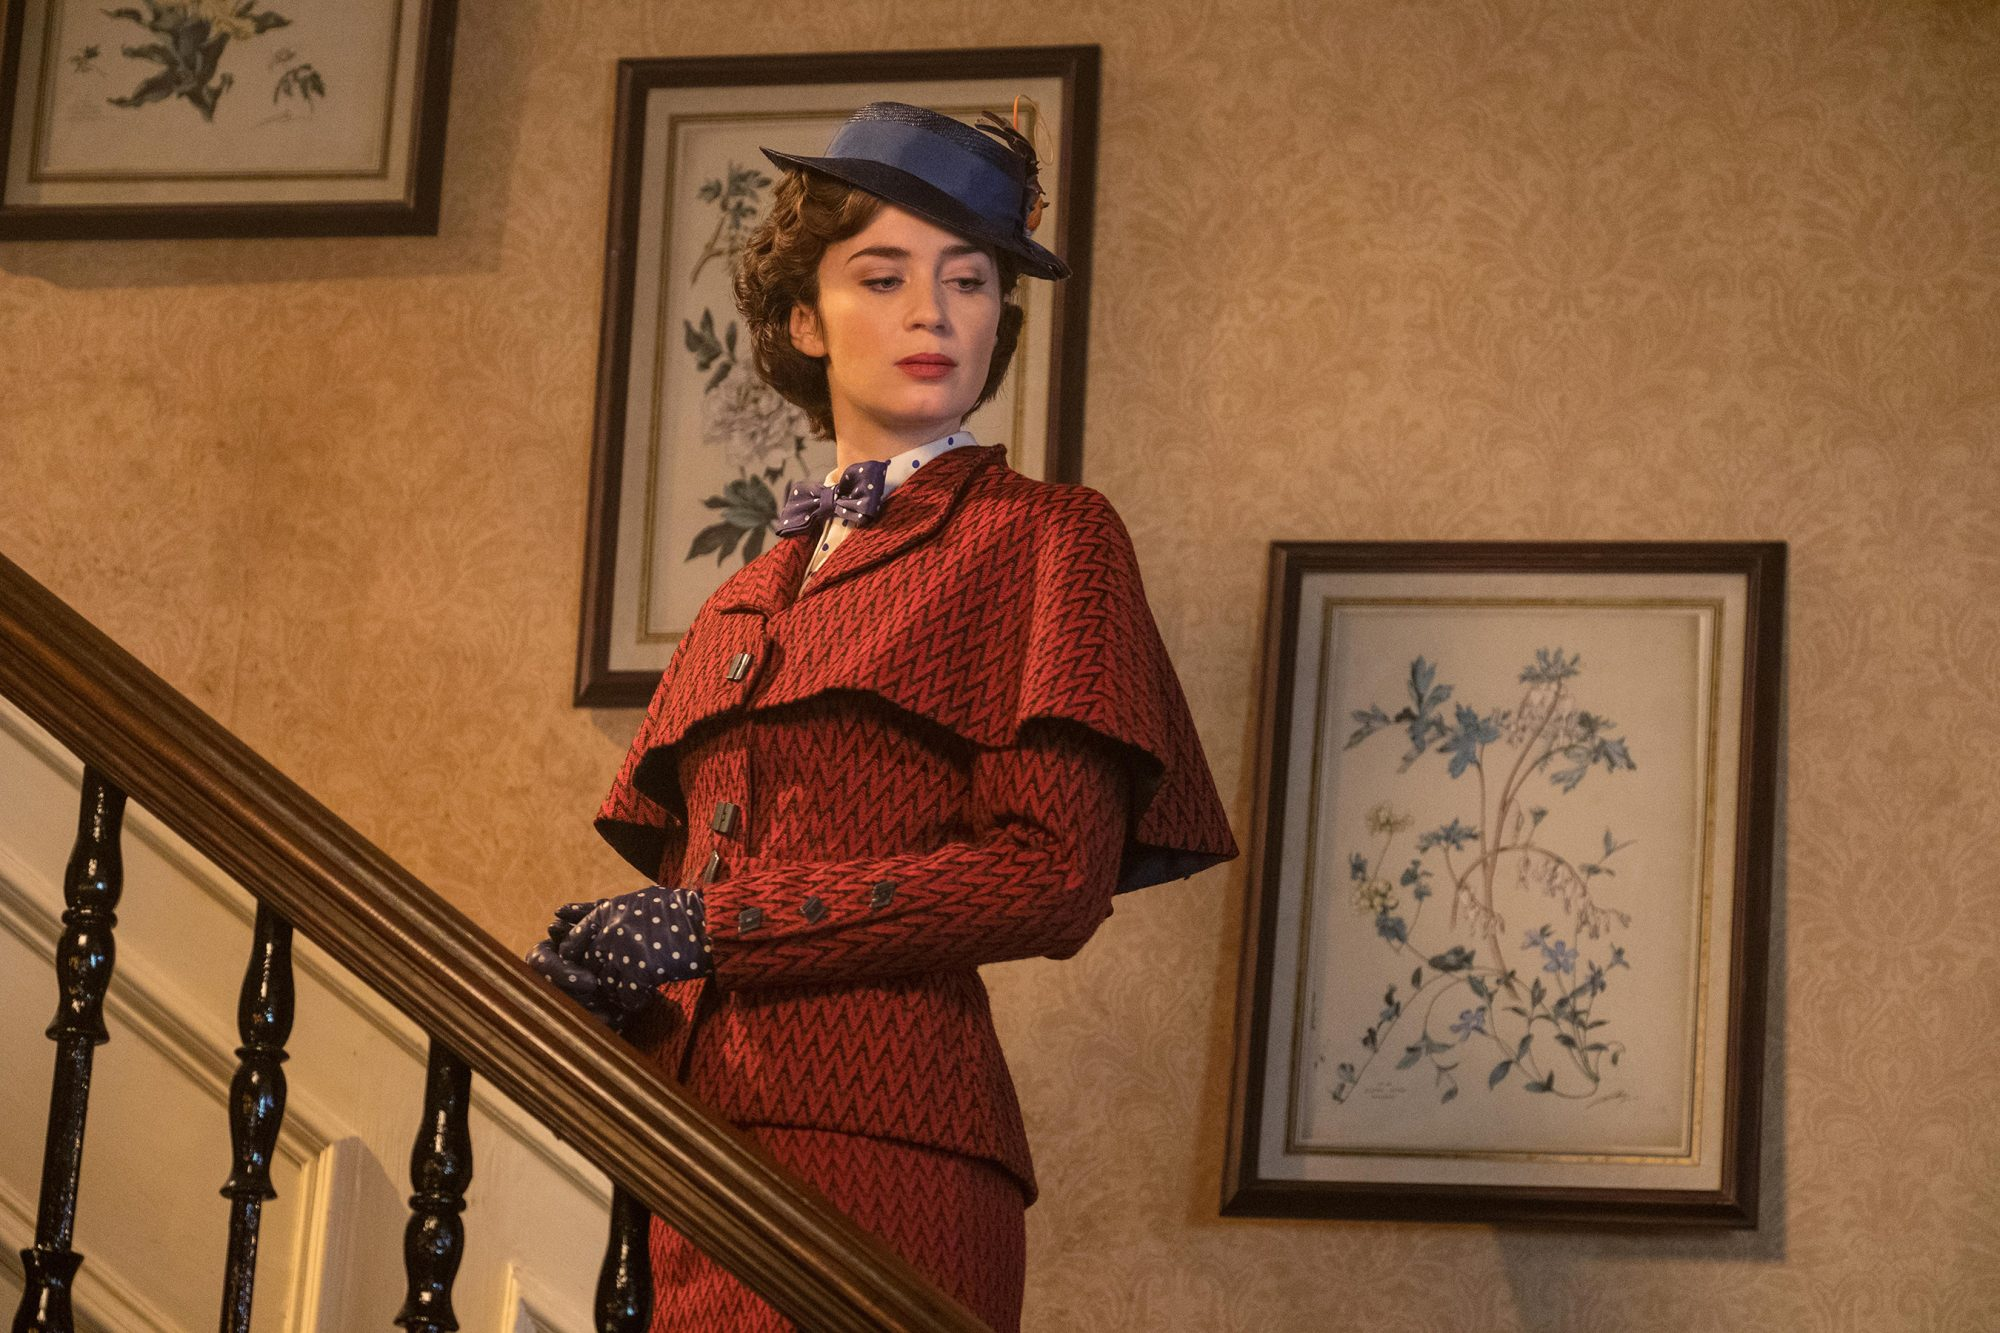 Mary Poppins Returns - Best Picture, Best Actress (Emily Blunt)